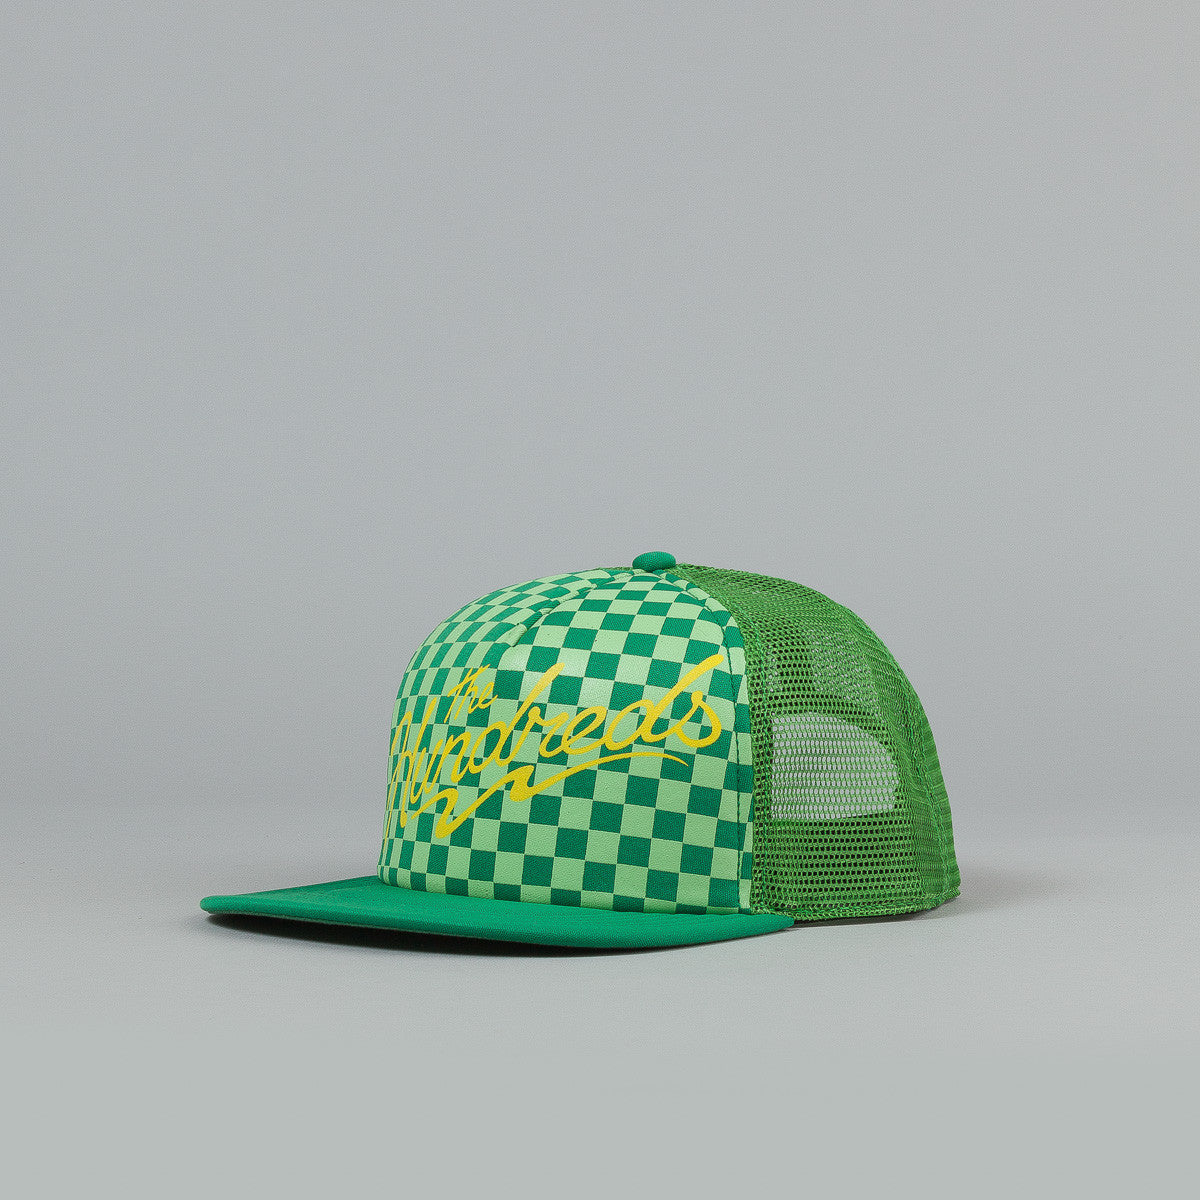 The Hundreds Crest Meshed Snapback Cap